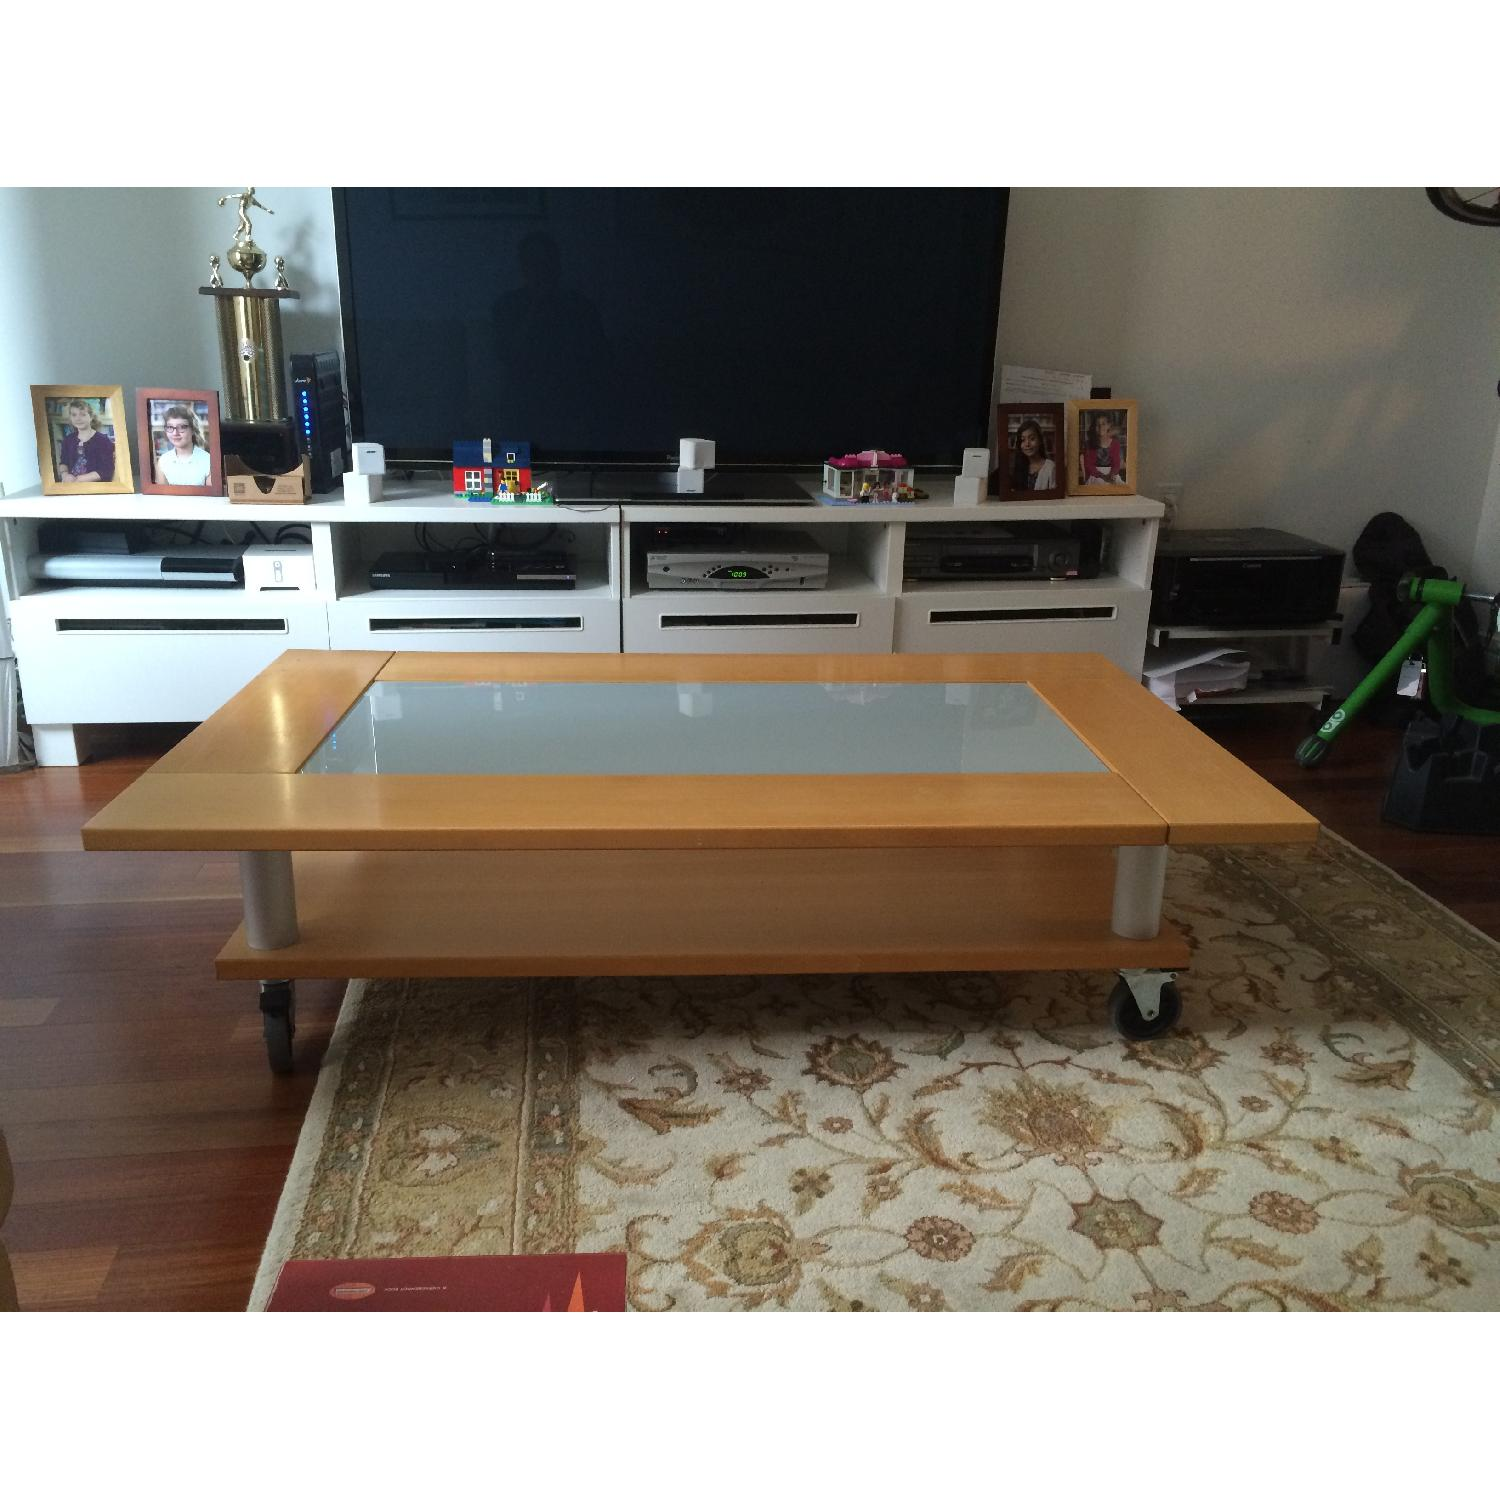 Two-Tier Coffee Table on Wheels - image-1